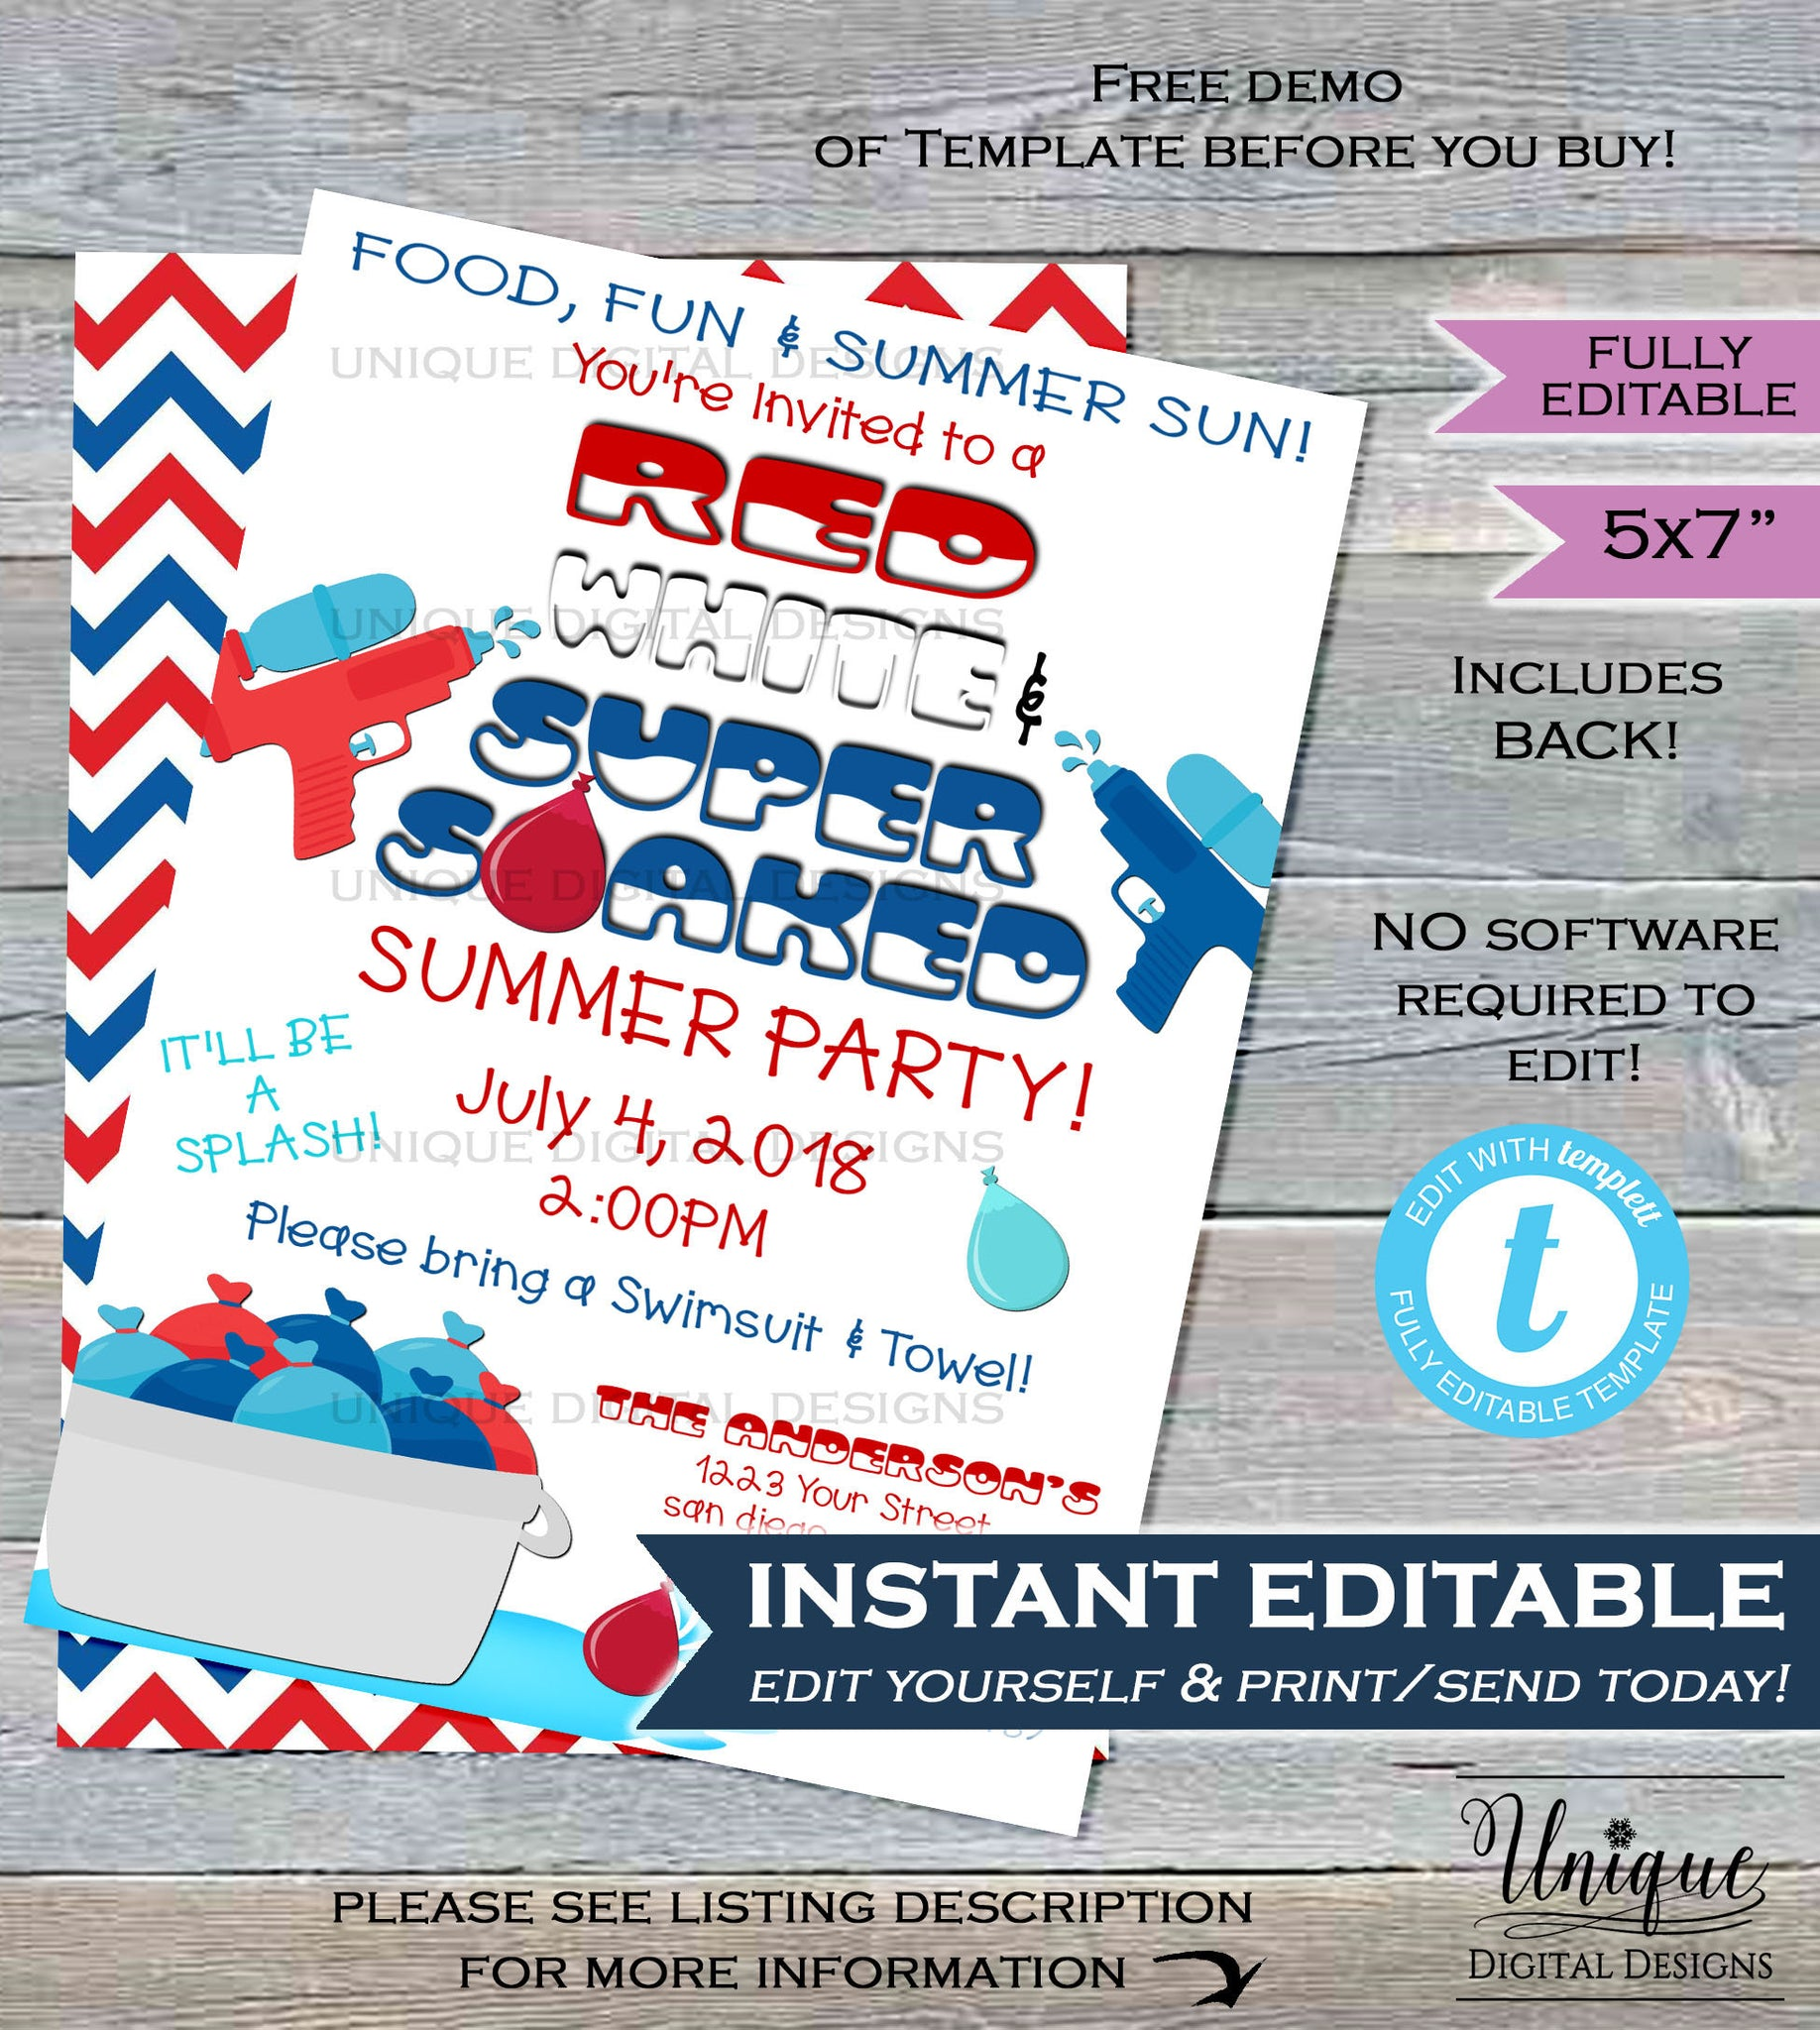 water party invitation super soaked red white blue 4th of july splish